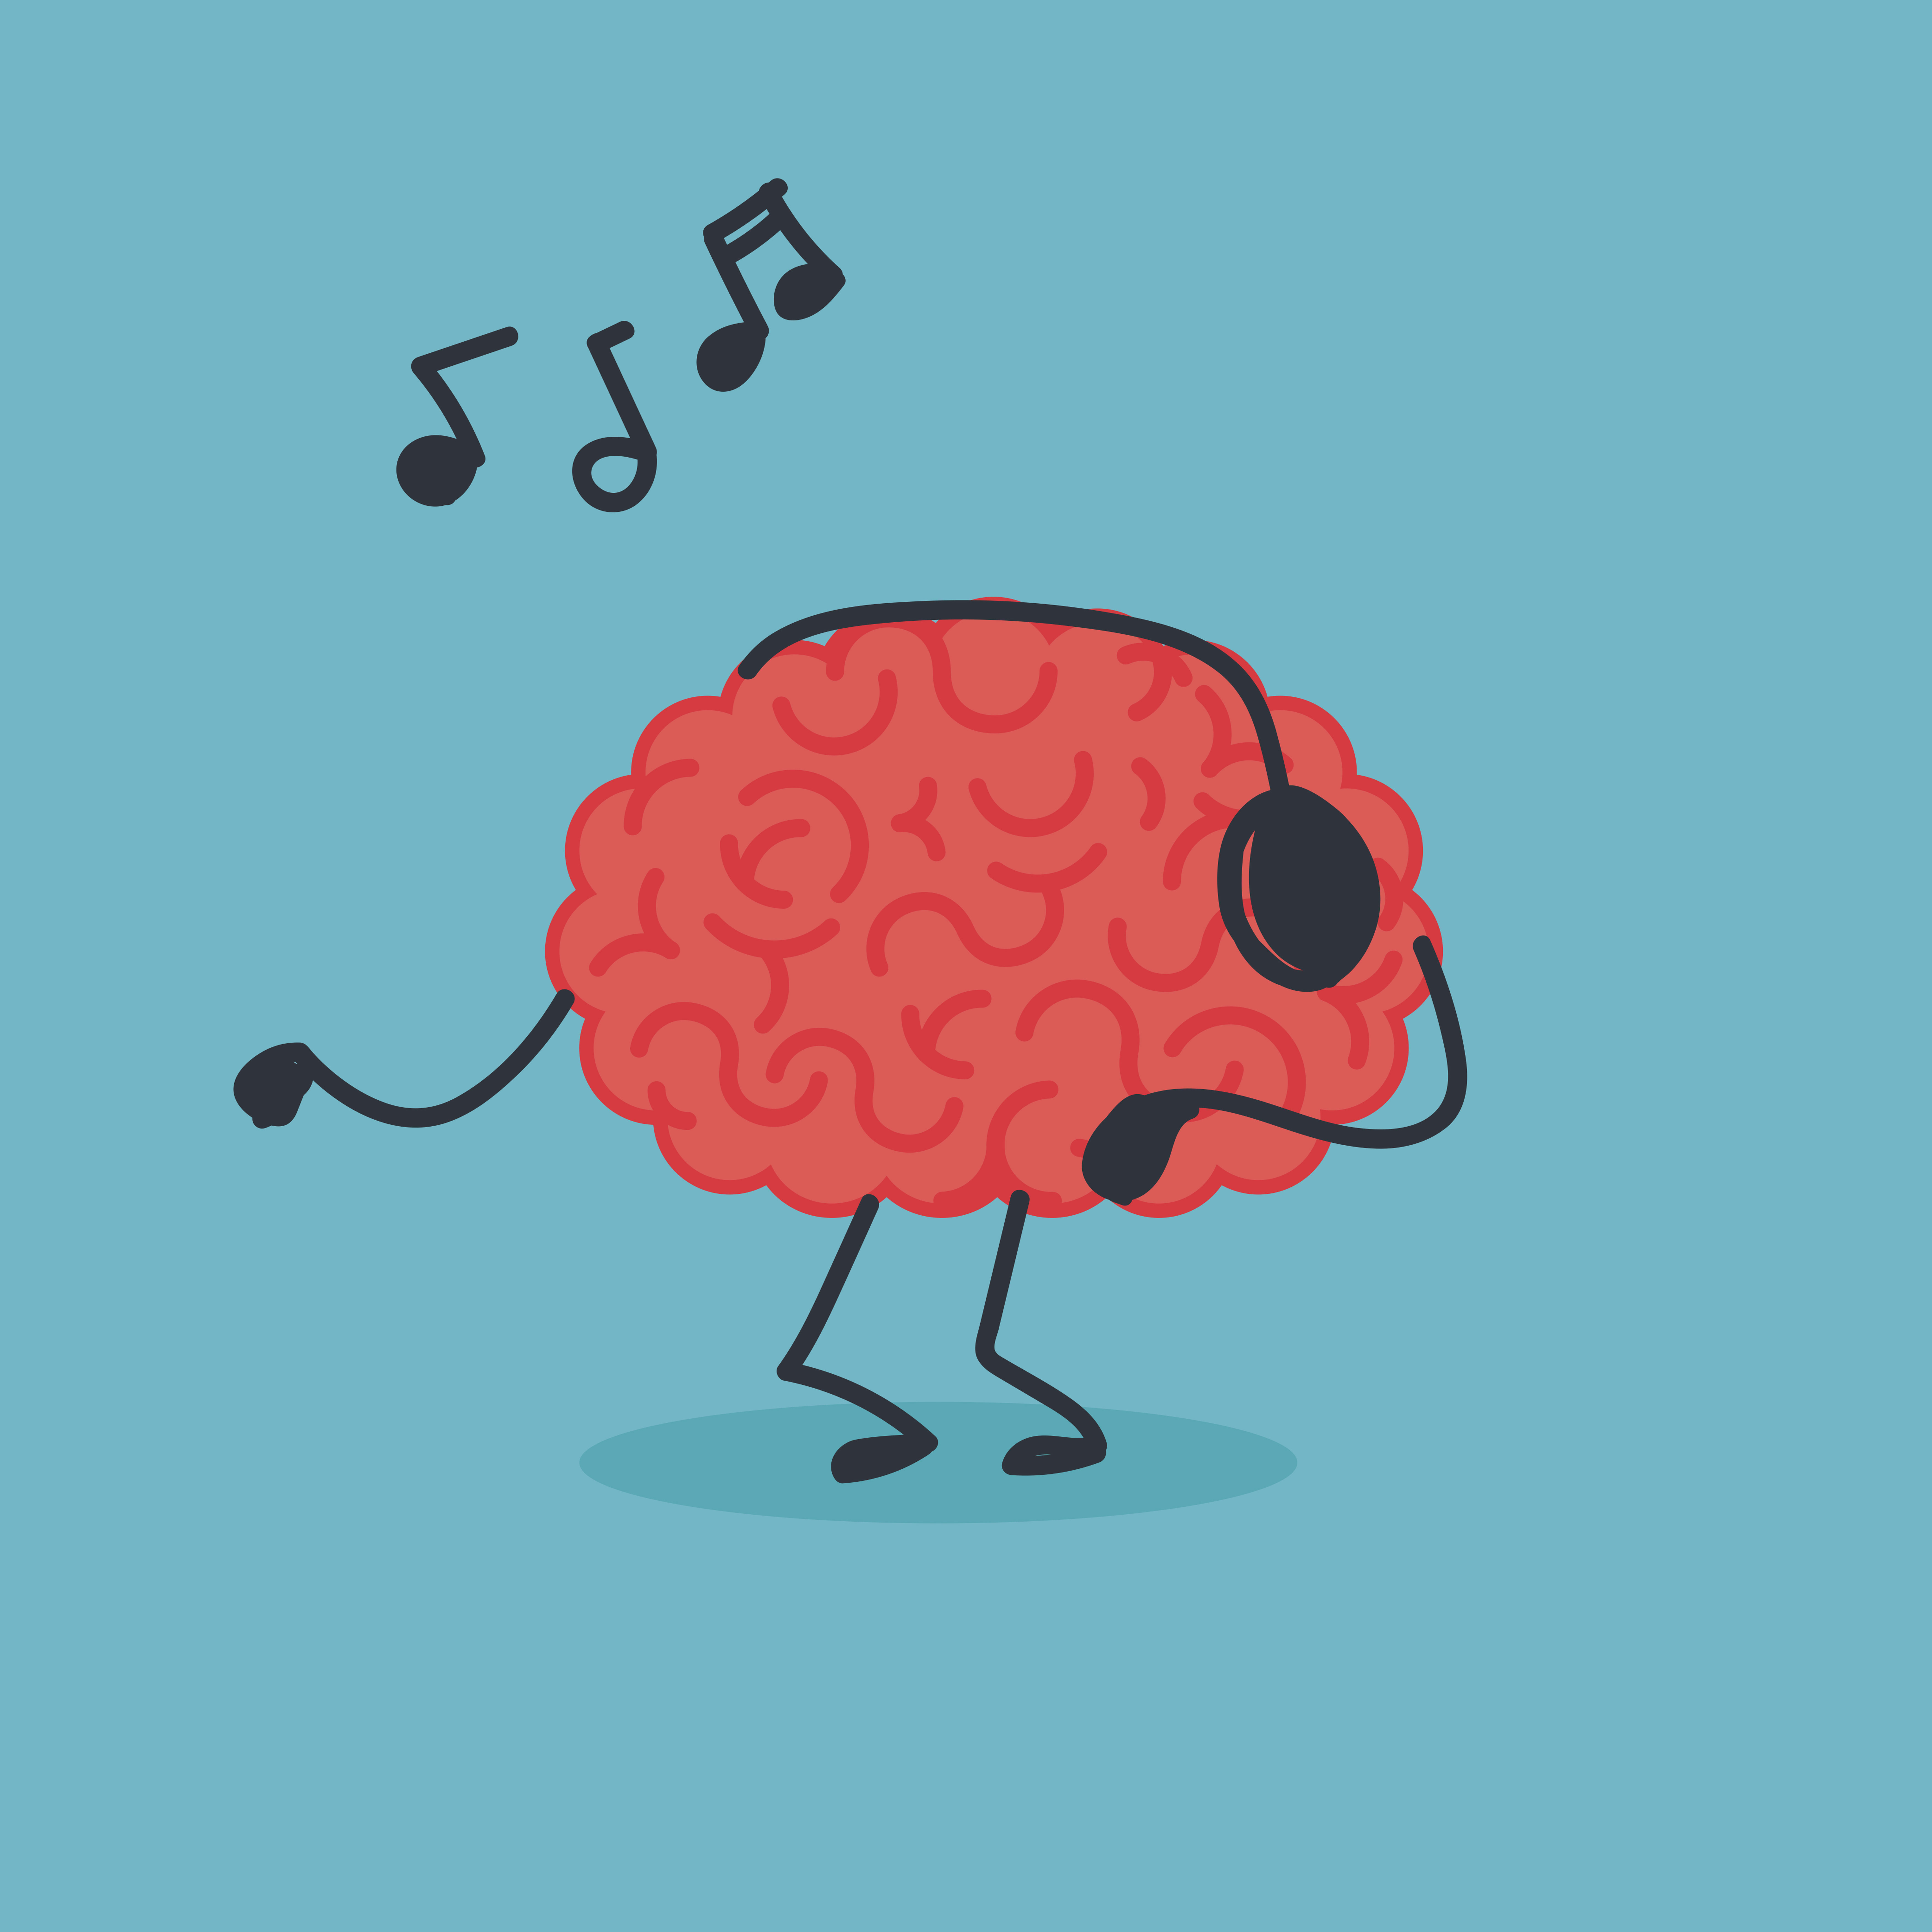 Brain Structure May Determine Who Gets Catchy Songs Stuck